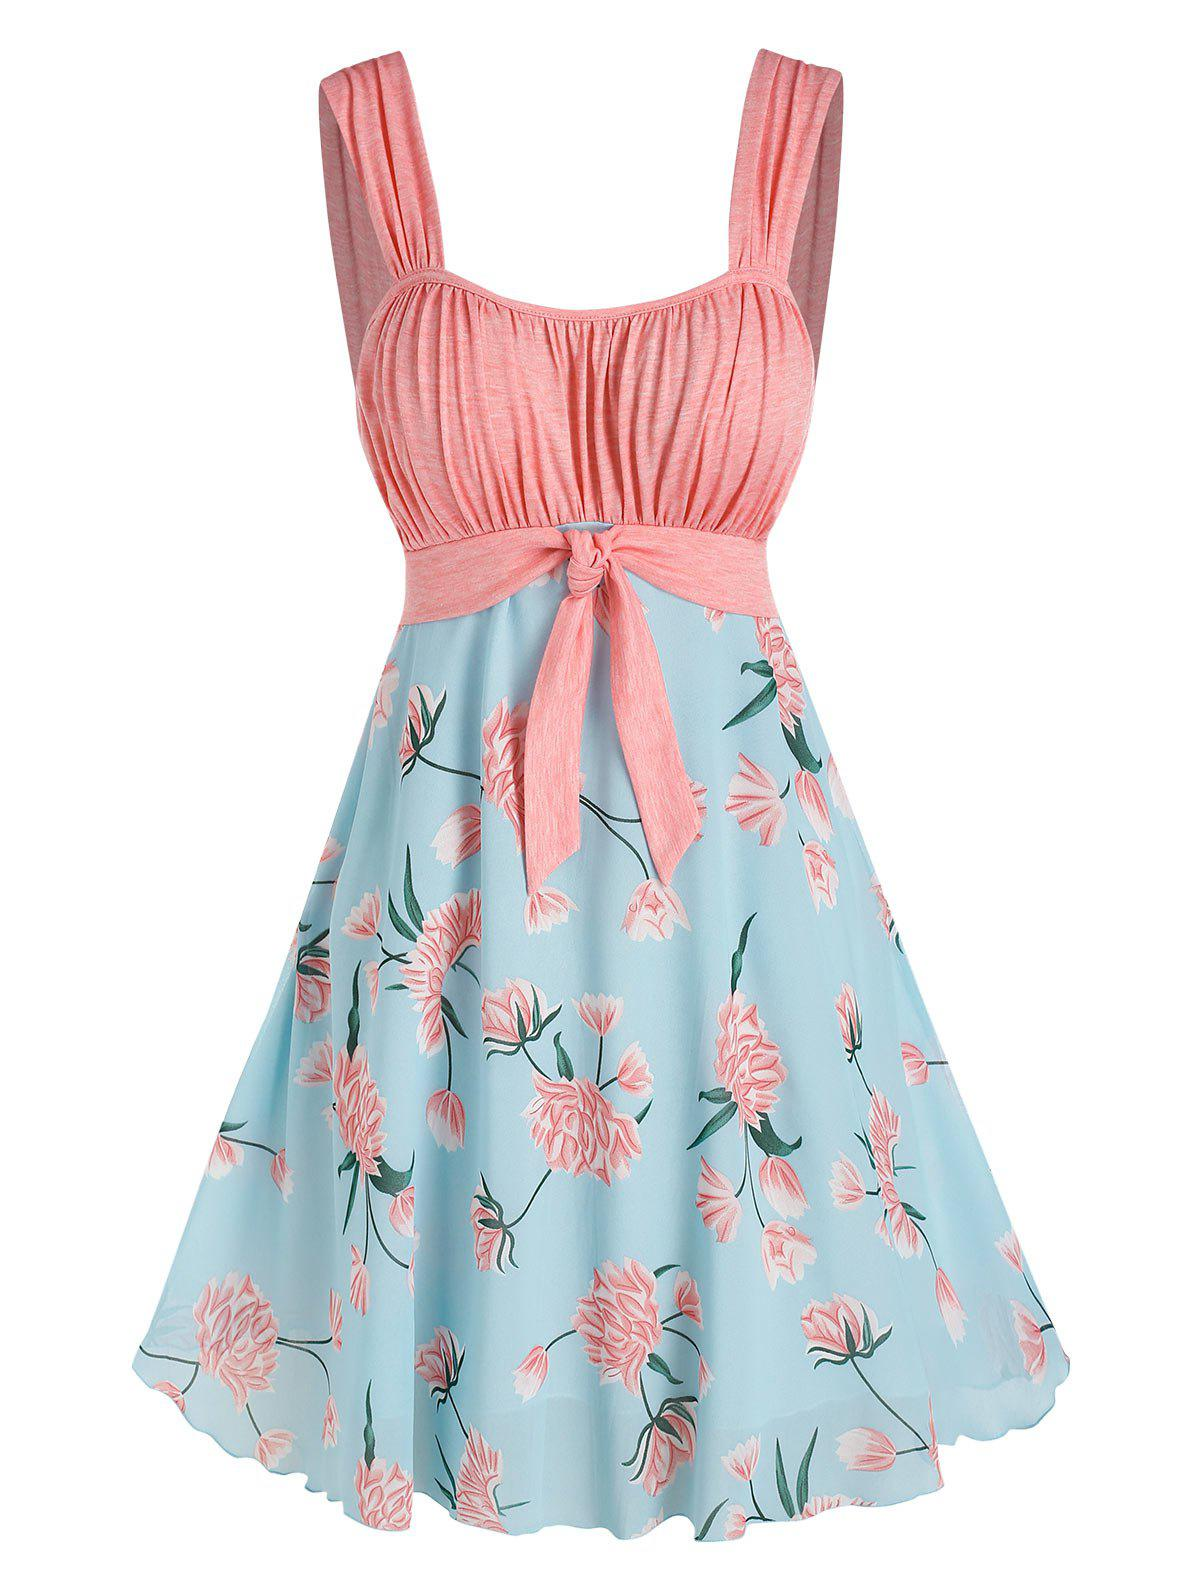 Floral Pattern Pleated Knot Colorblock Dress - multicolor XL